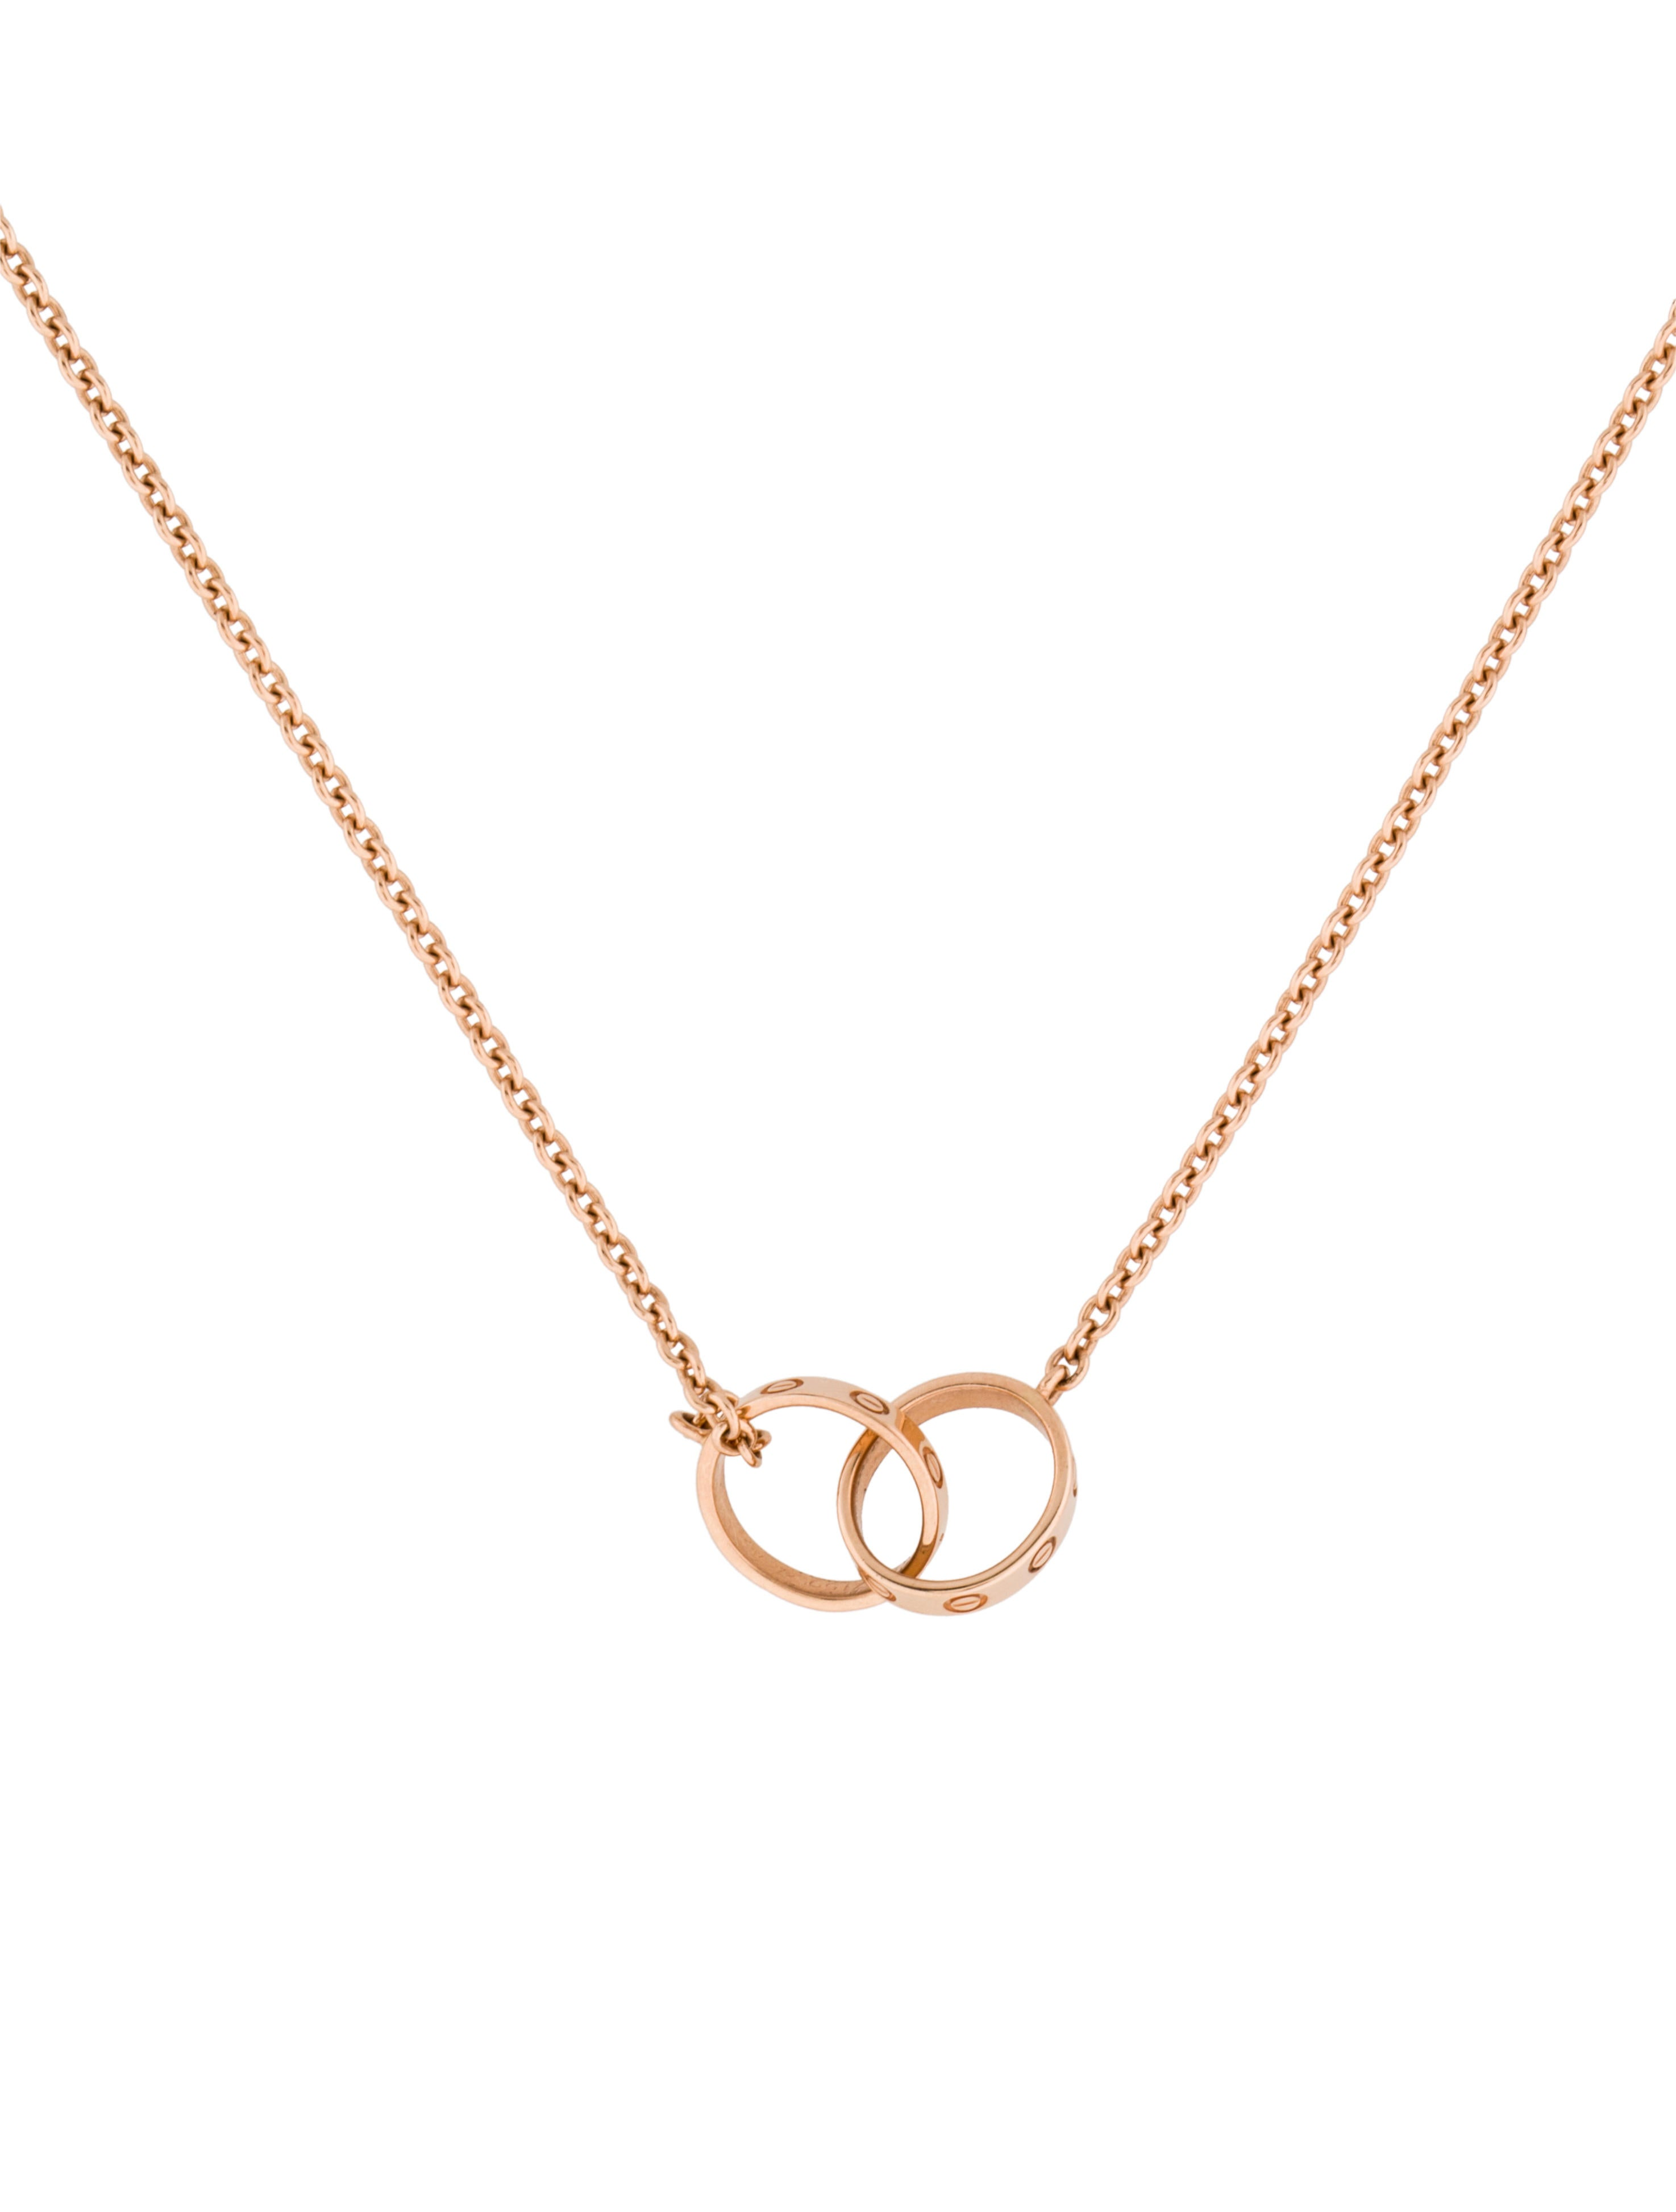 Cartier Love Necklace Necklaces Crt22994 The Realreal